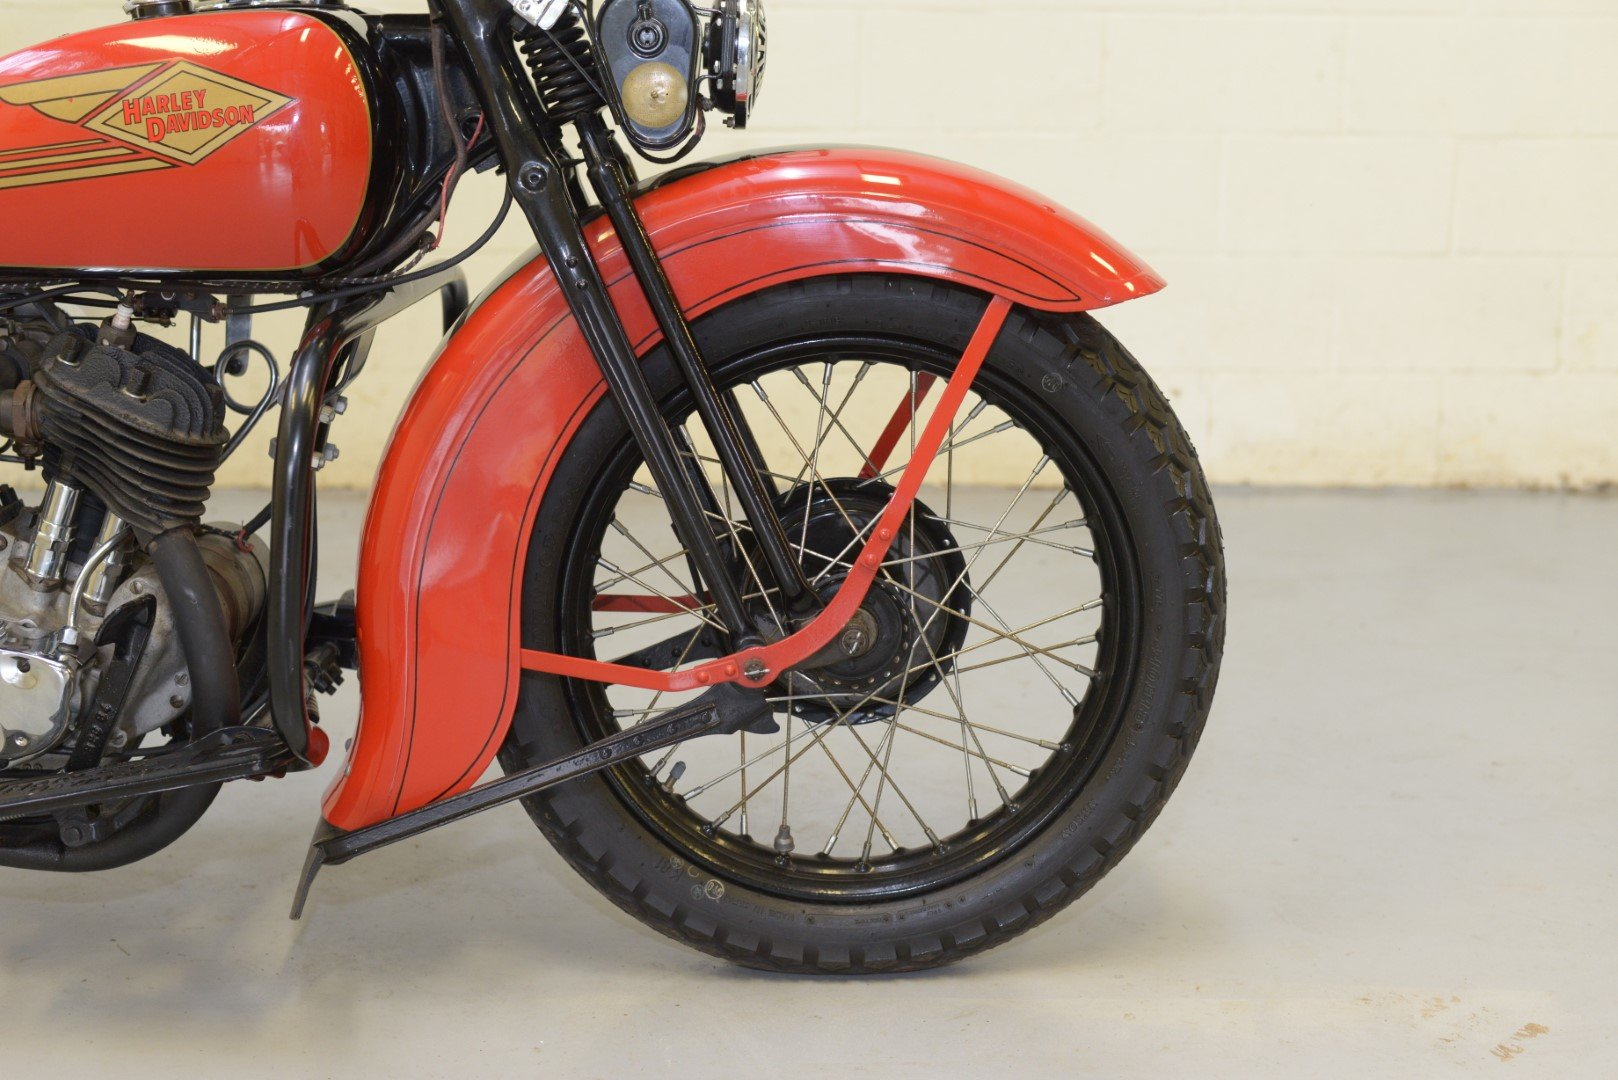 1934 HARLEY-DAVIDSON R45 750cc TWIN For Sale by Auction (picture 3 of 6)